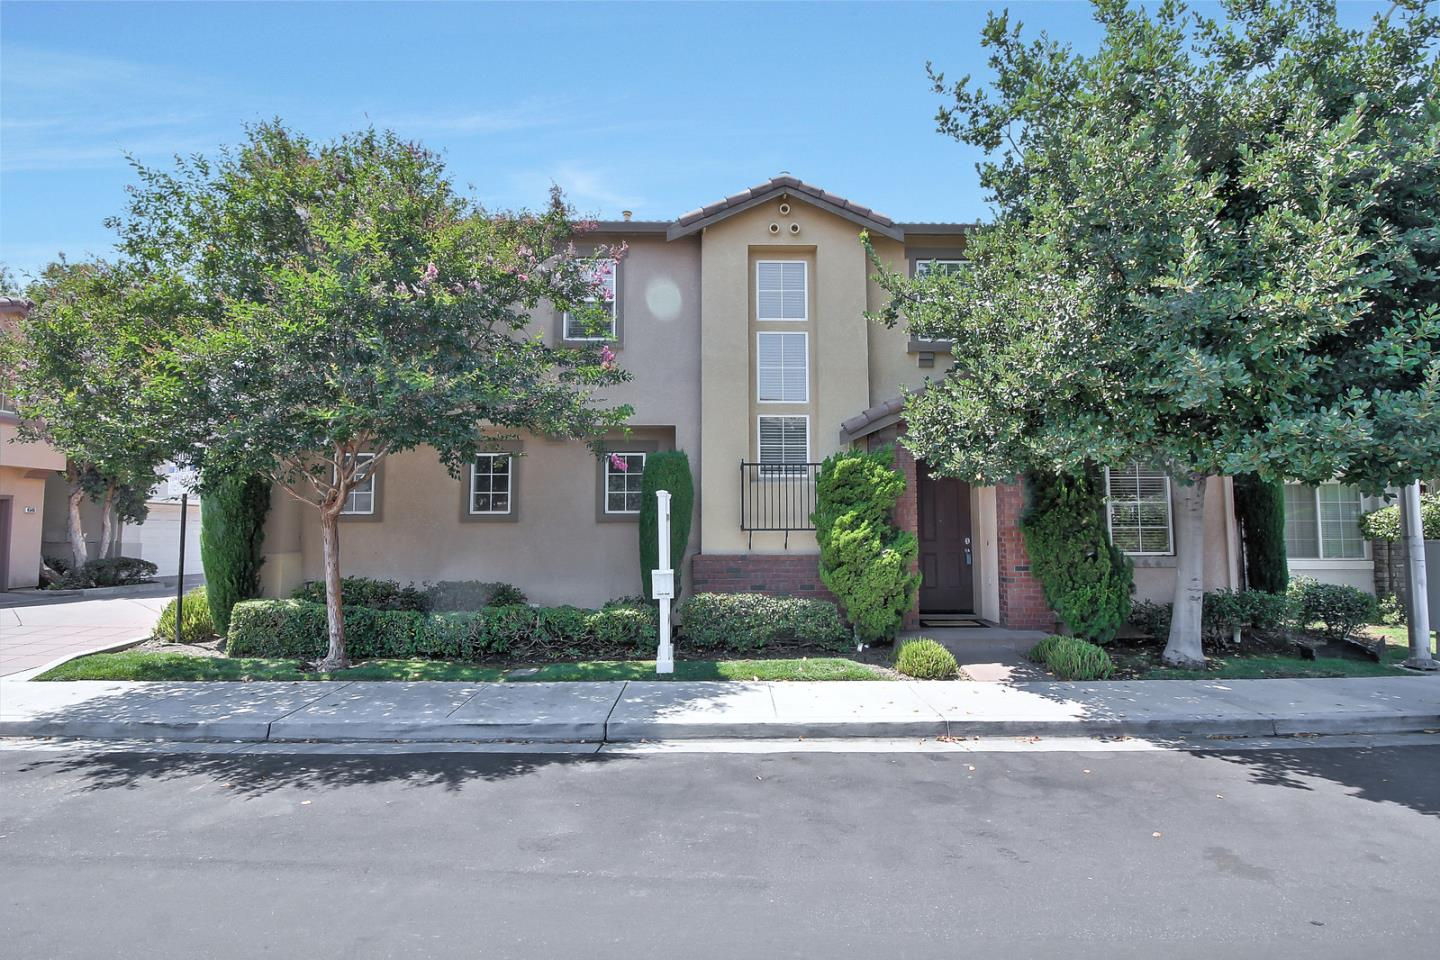 Additional photo for property listing at 4560 Cheeney Street  Santa Clara, California 95054 United States